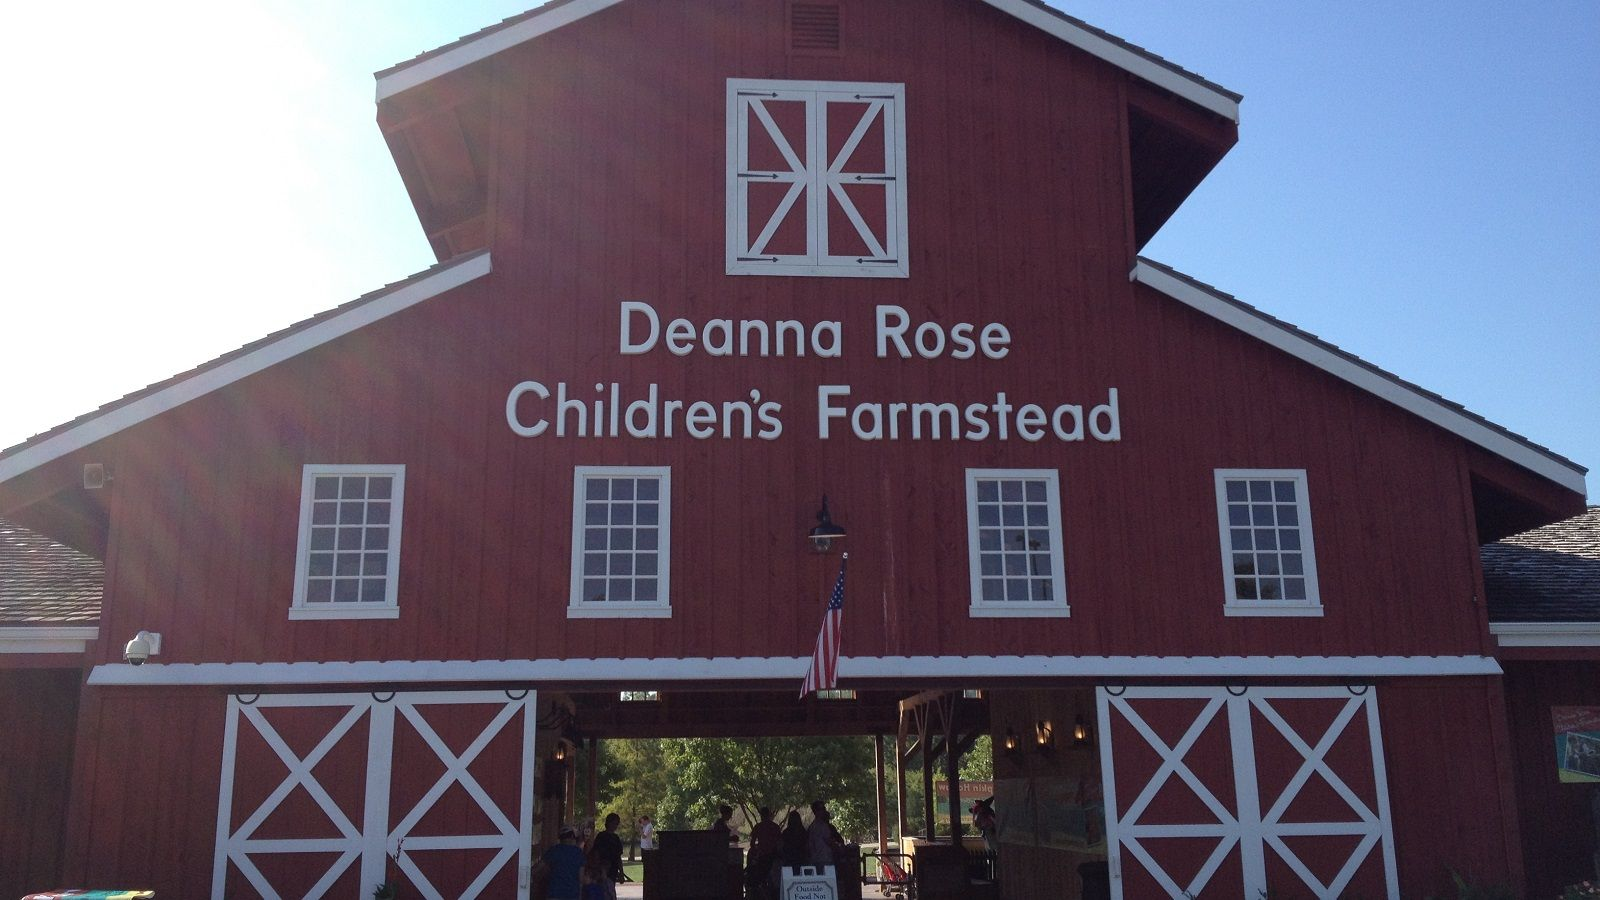 Sheraton Overland Park Hotel at the Convention Center - Deanna Rose Children's Farmstead